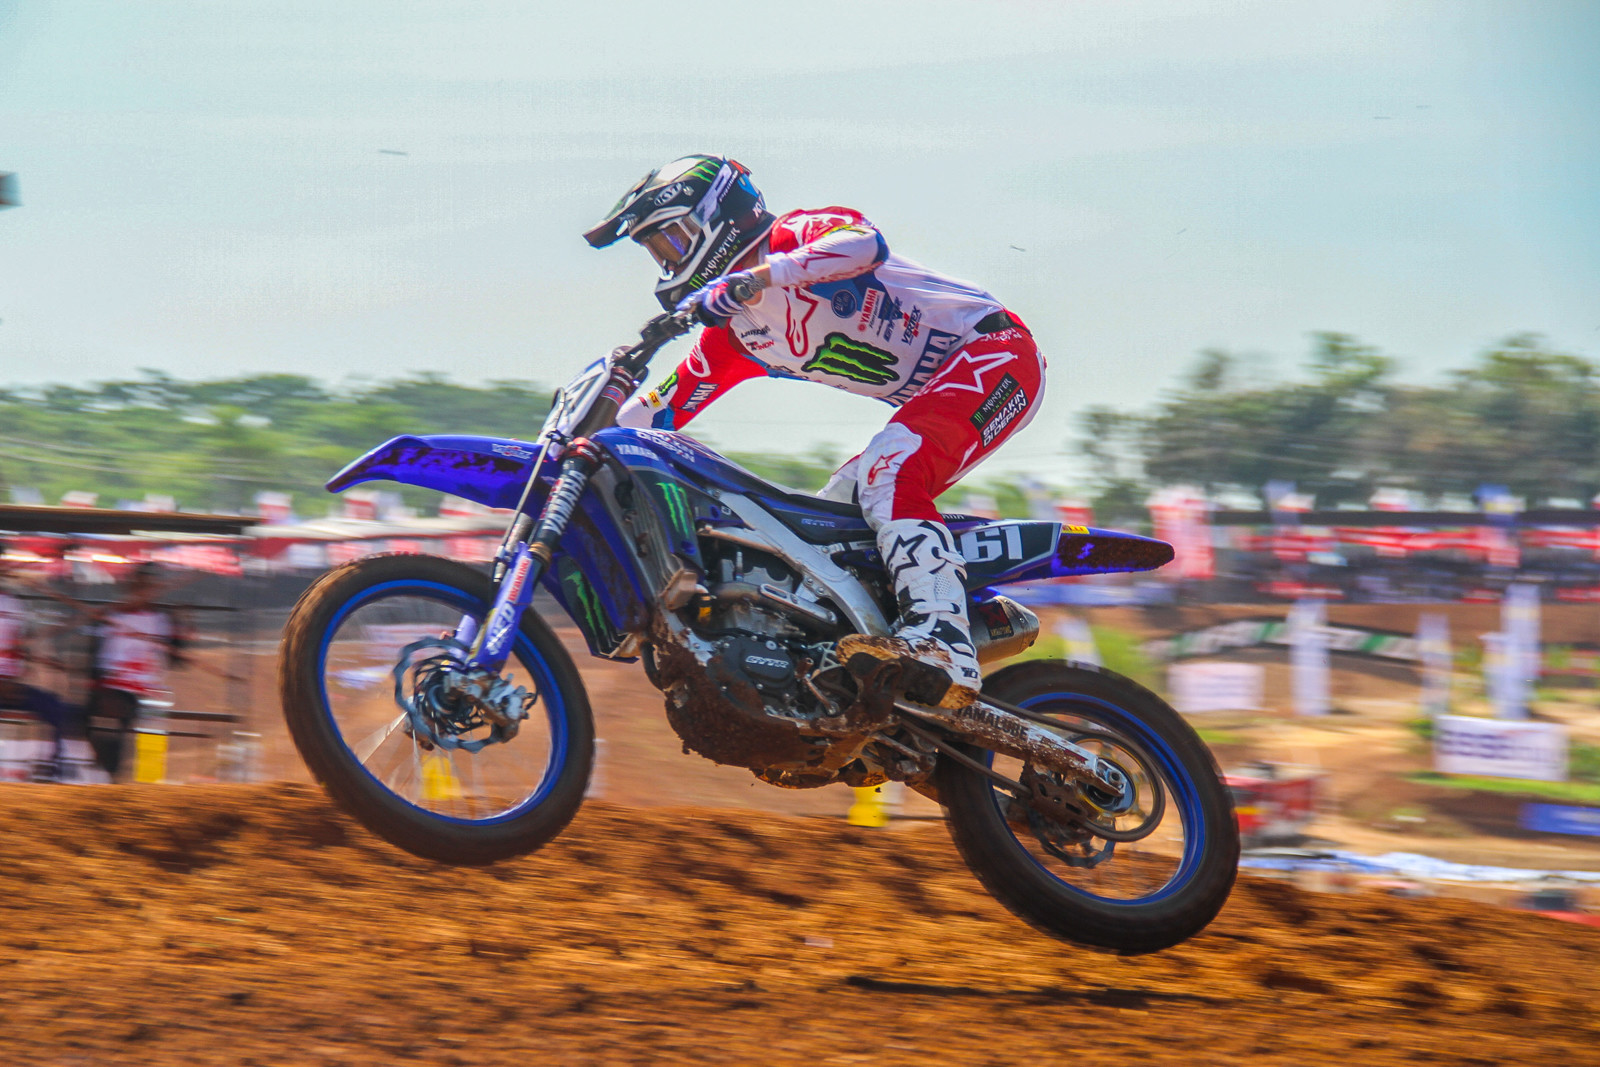 The MXGP of Asia was overall a disaster for Romain Febvre as he placed 16th overall and lost fourth overall in the points to Tim Gajser.